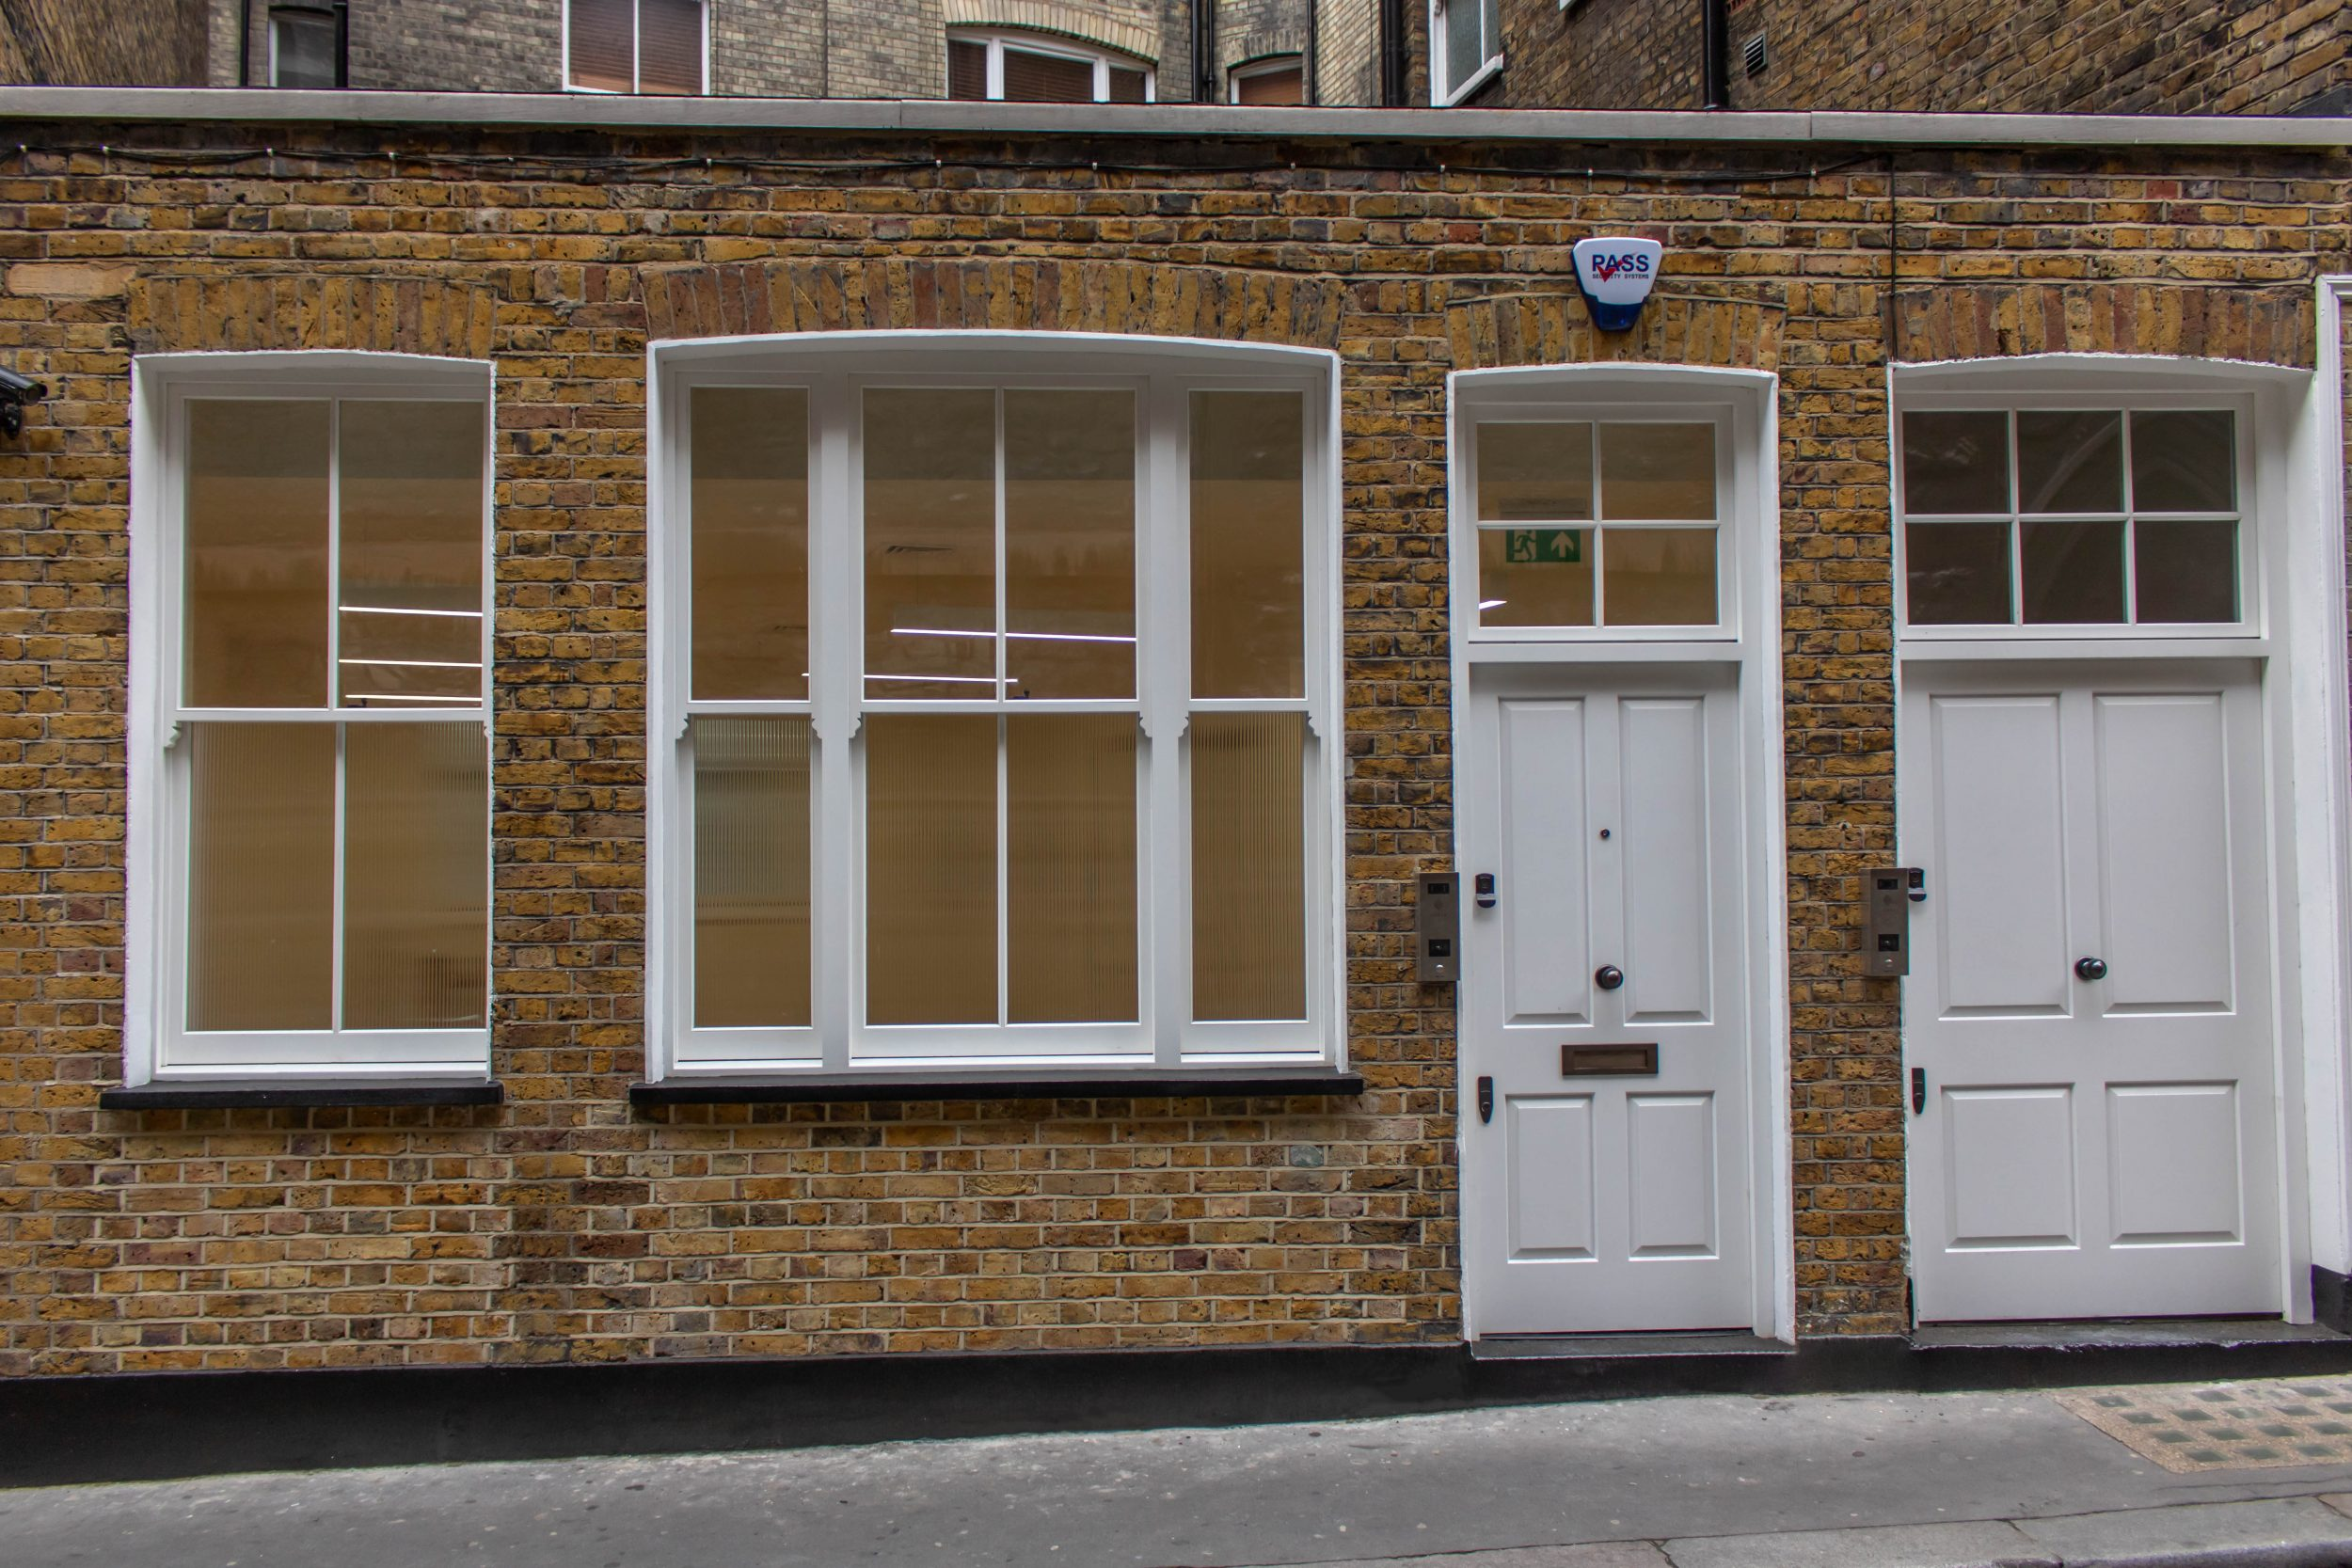 Front Door and Sash Windows, Brick Street, Central London